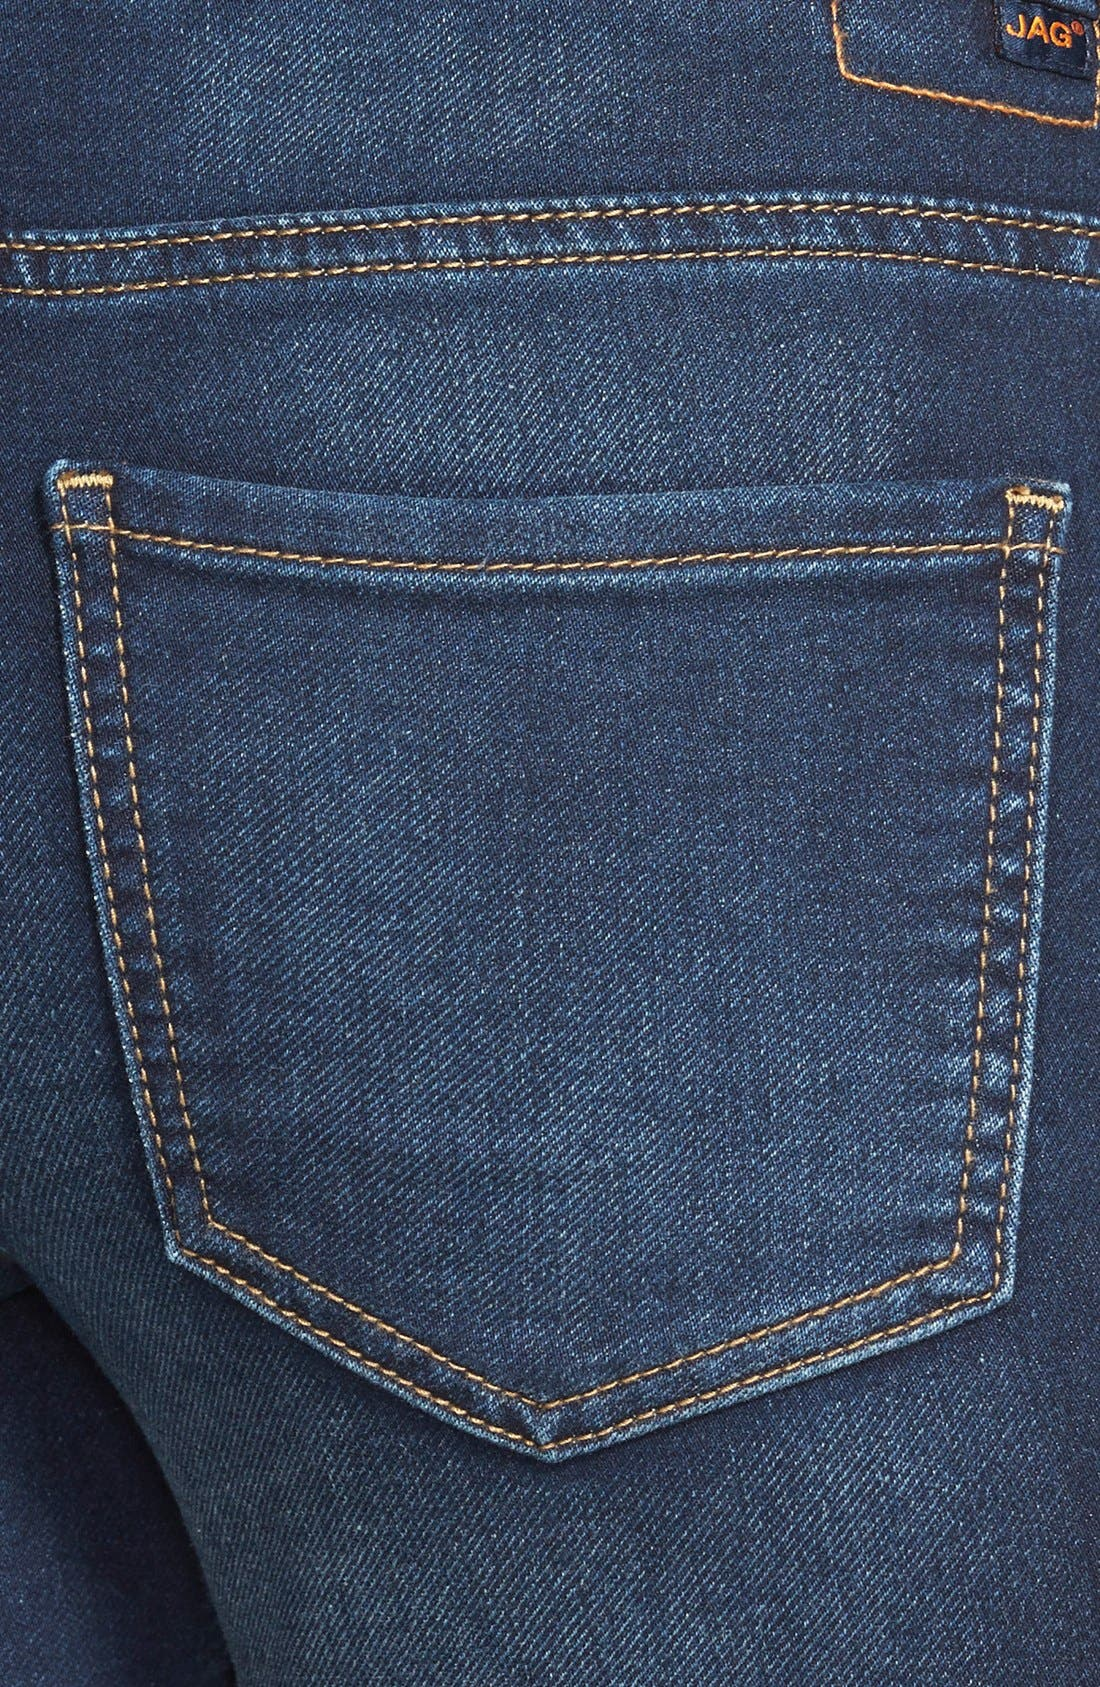 Alternate Image 3  - Jag Jeans 'Nora' Pull-On Stretch Knit Skinny Jeans